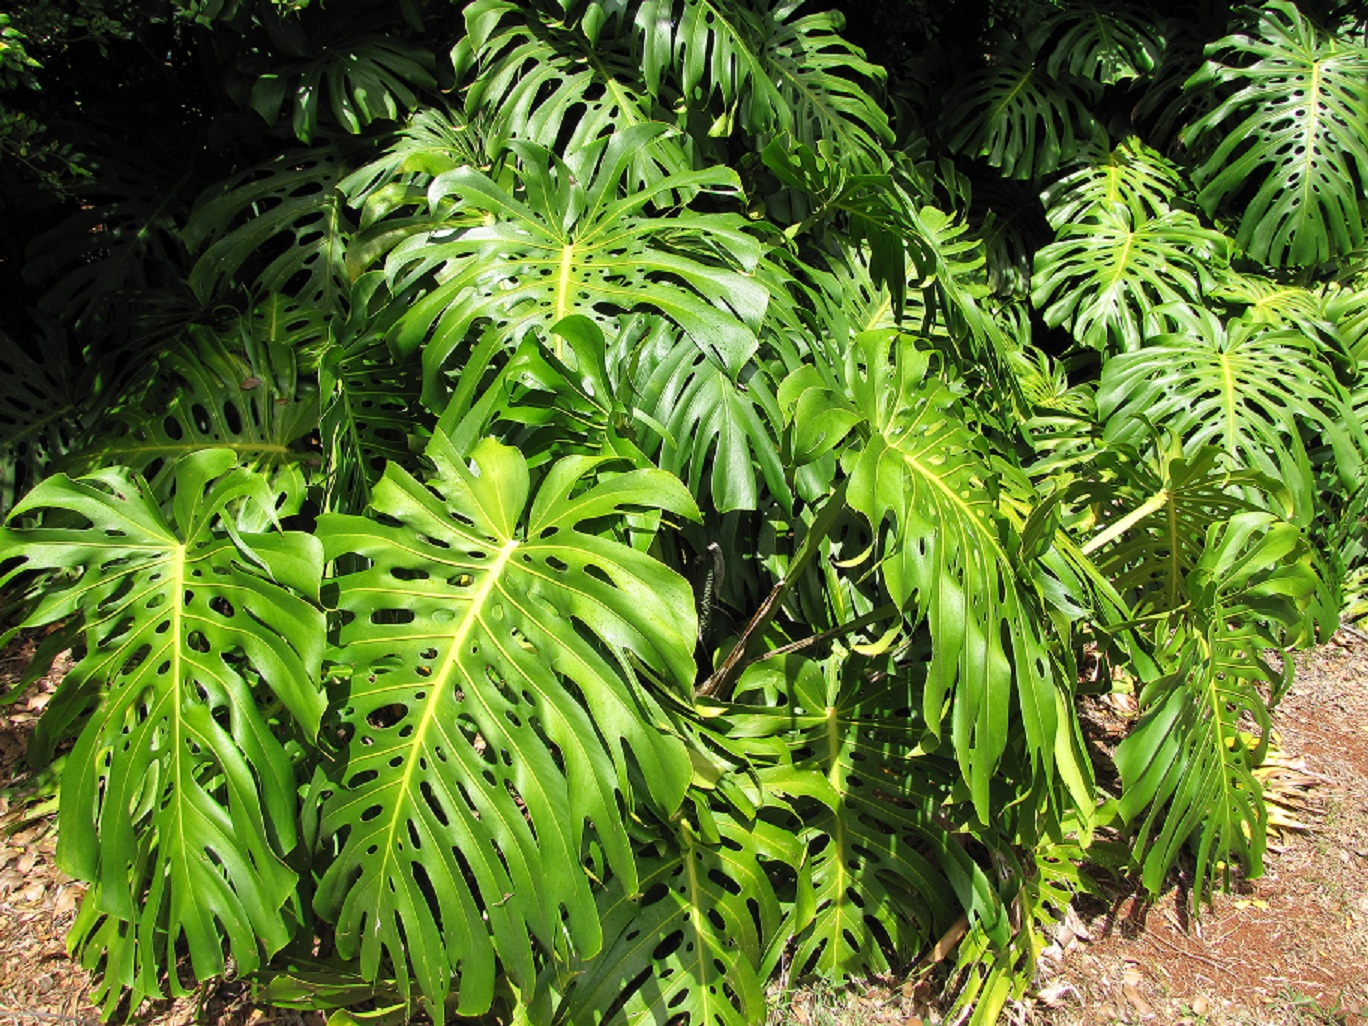 That s a monstera isn t it mcm plant id grass trees for Plante monstera